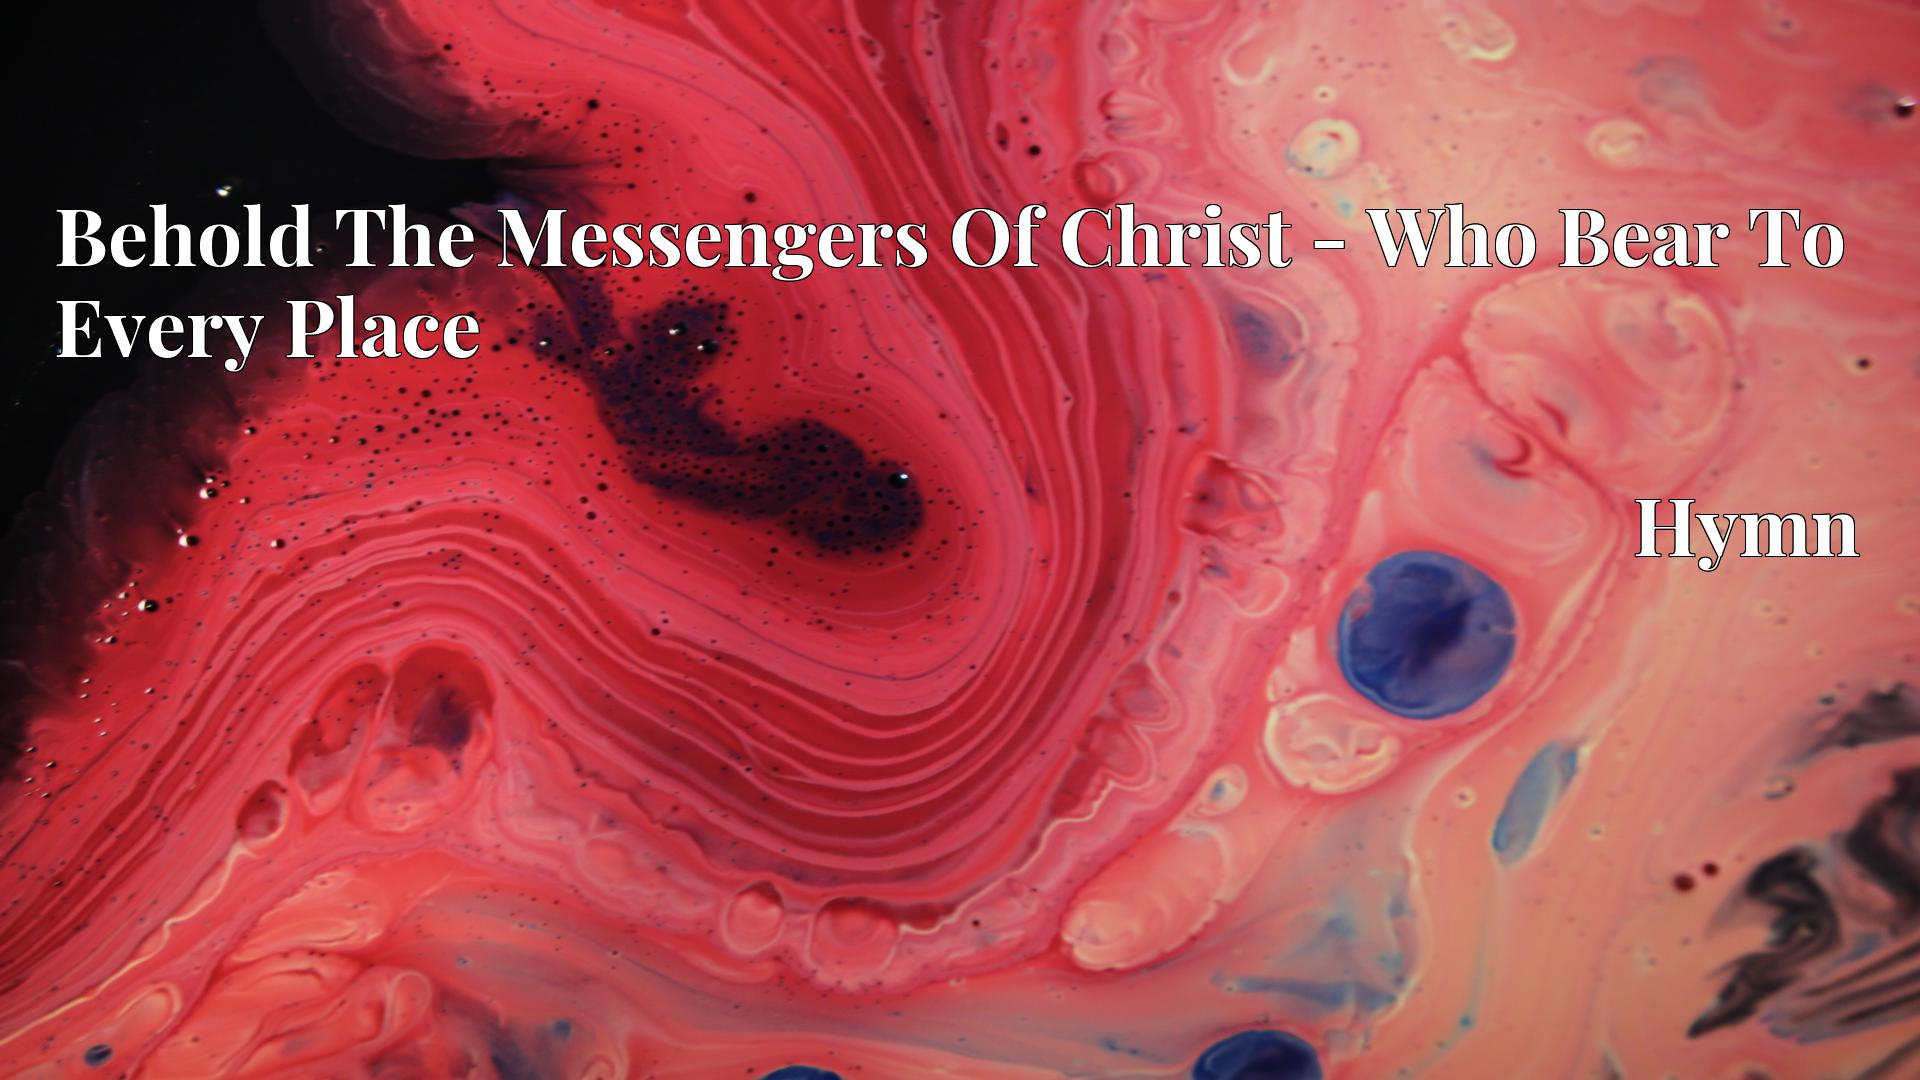 Behold The Messengers Of Christ - Who Bear To Every Place Hymn